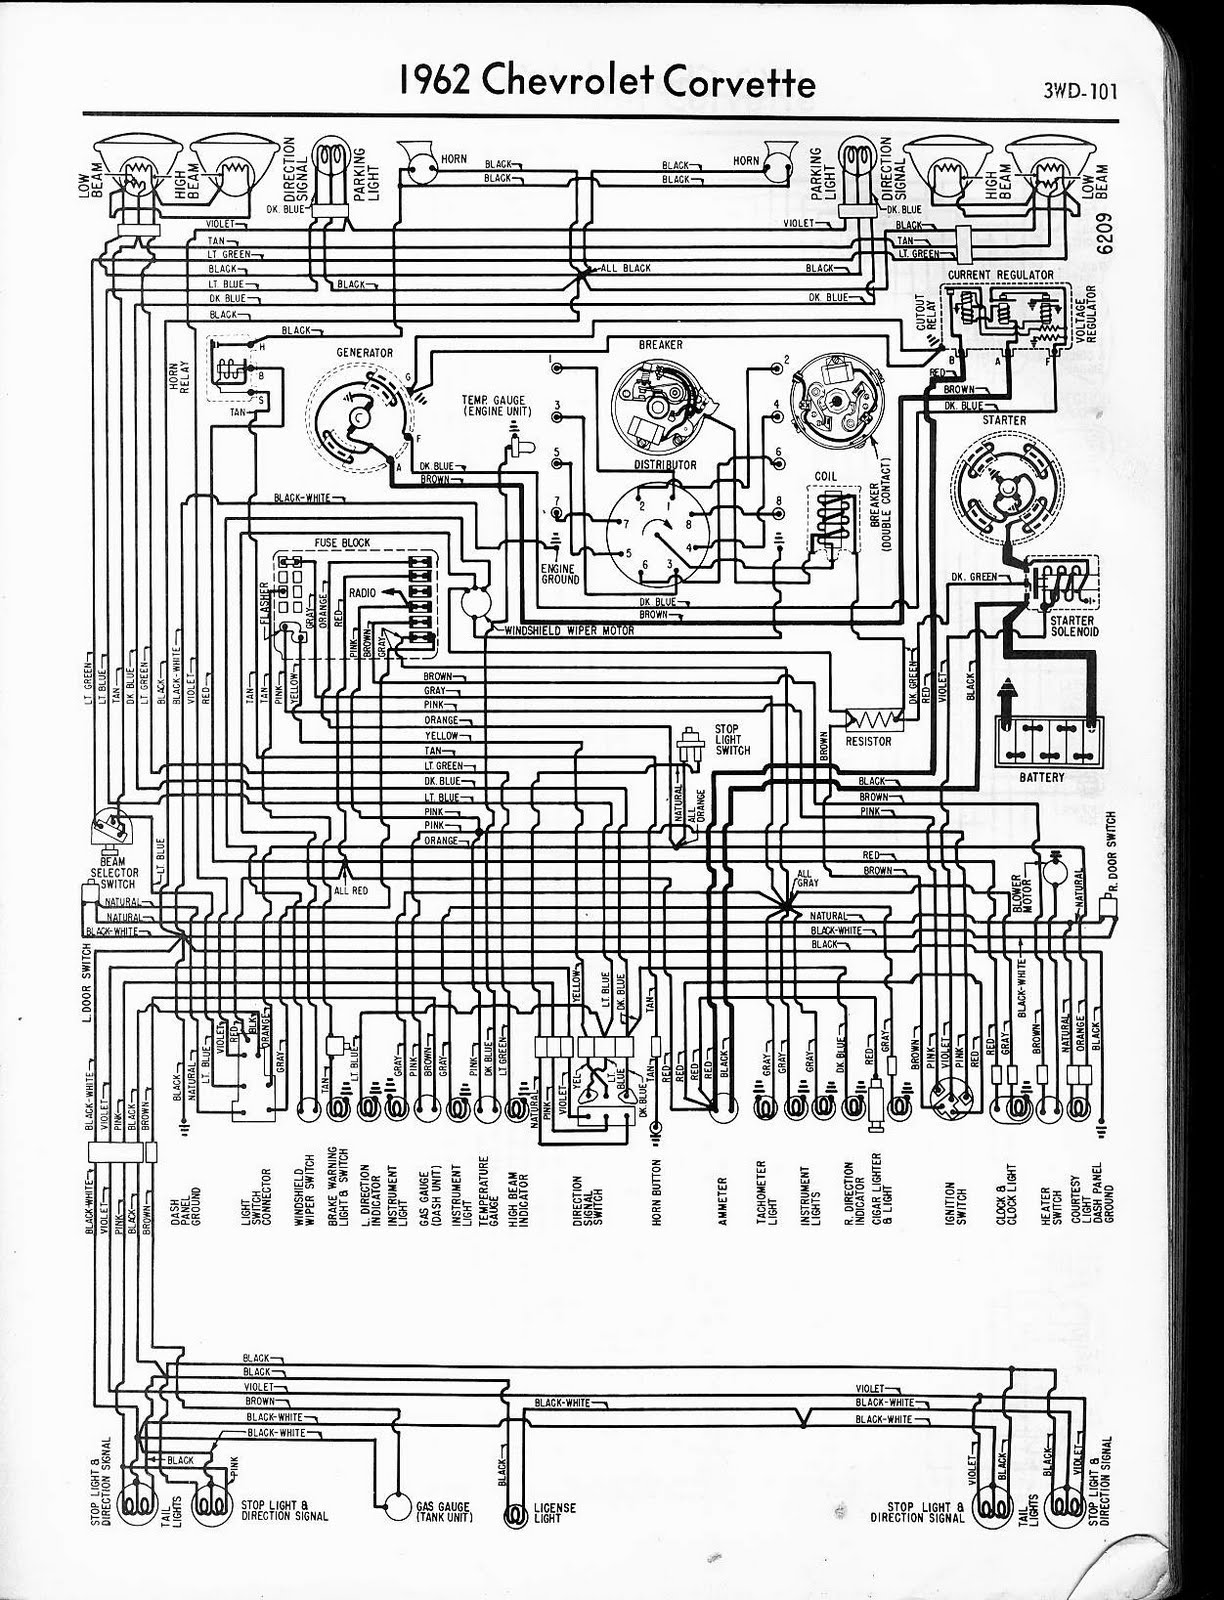 Free Wiring Diagrams For Cars Block Definition Diagram Auto 1962 Chevrolet Corvette